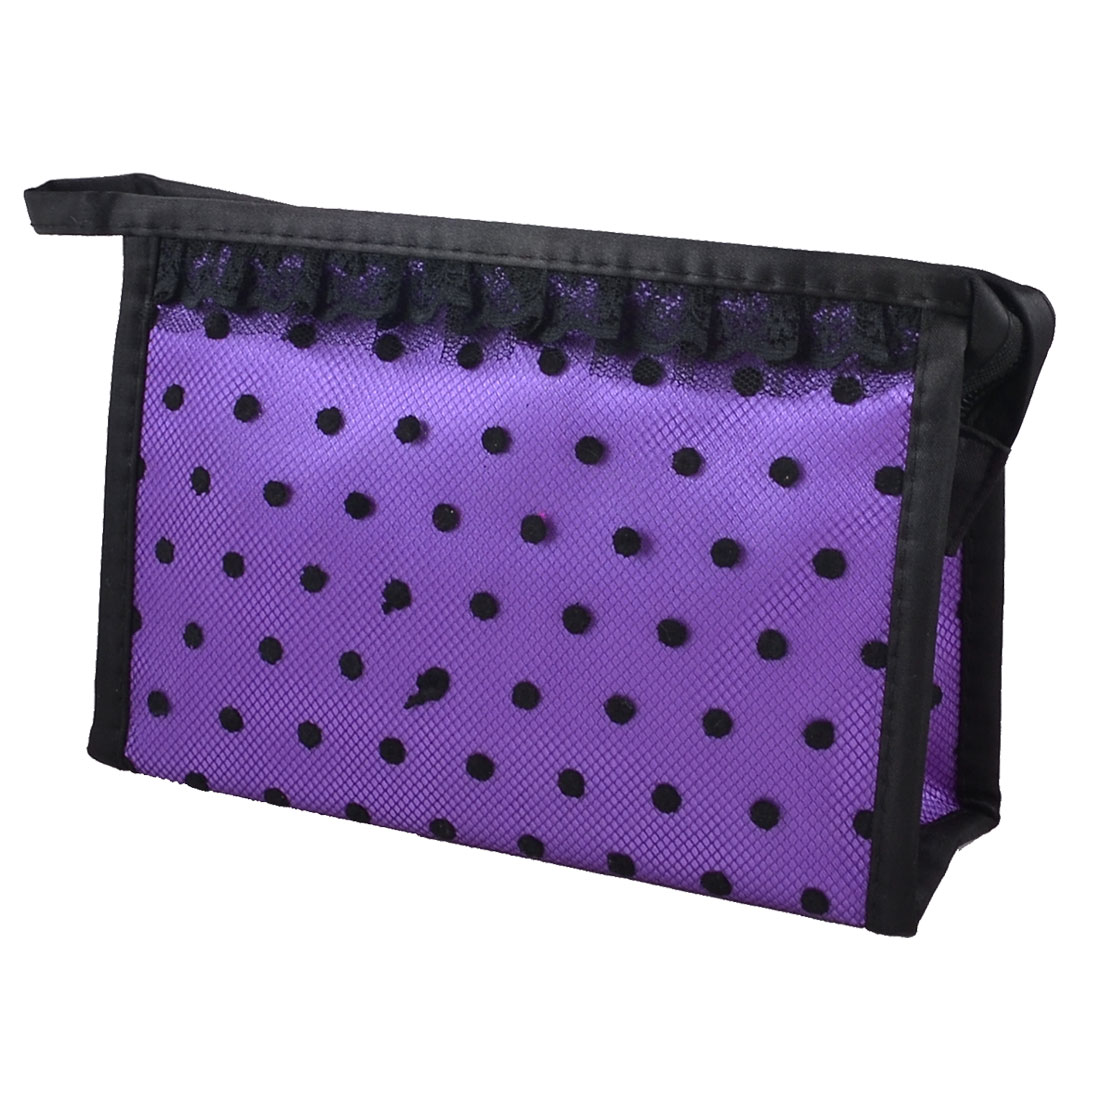 Zip up Rectangular Dots Meshy Lace Makeup Cosmetic Case Holder Hand Bag Purple Black